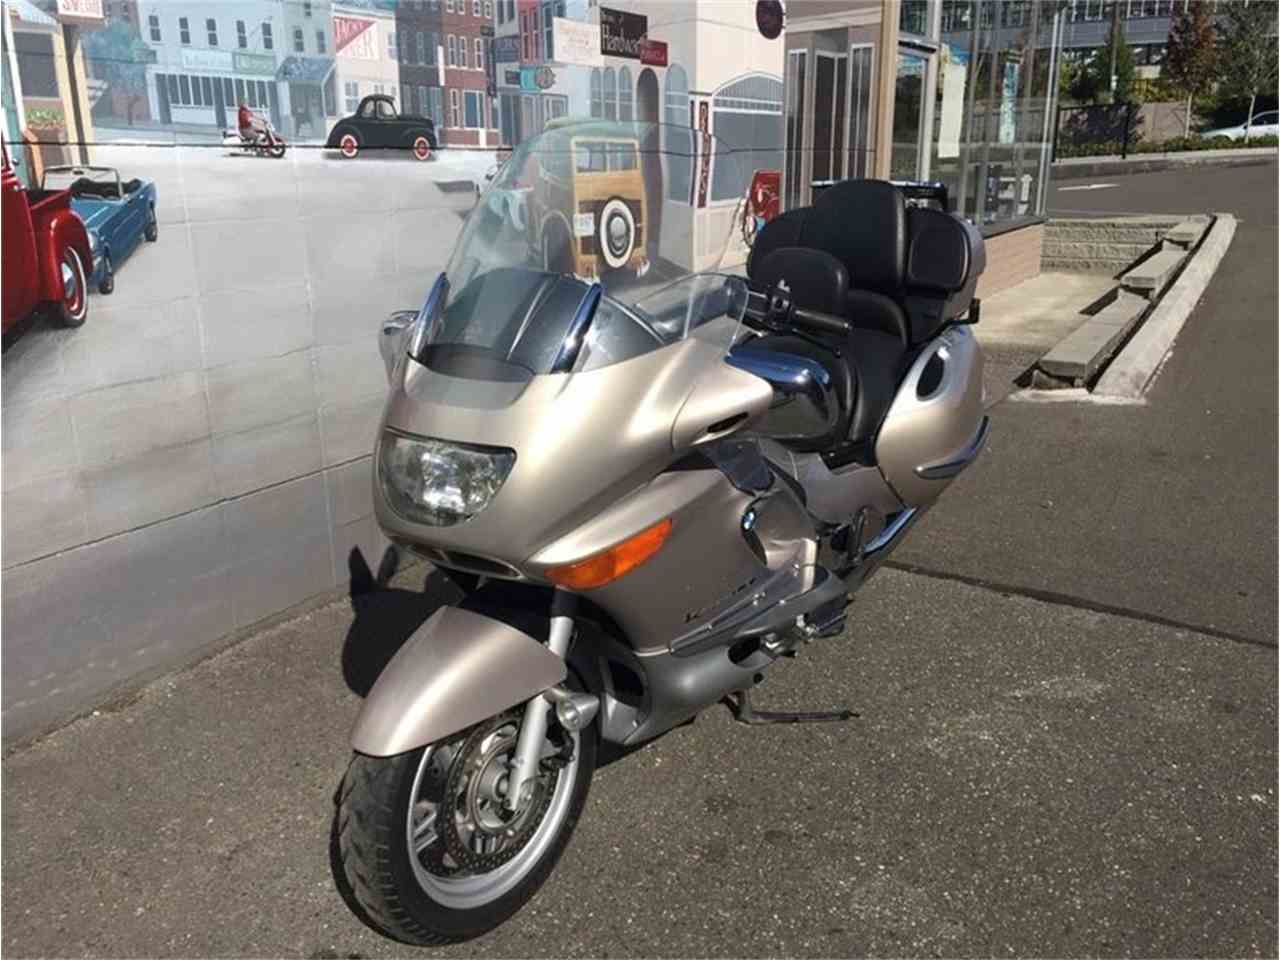 2002 BMW Motorcycle for Sale - CC-997314